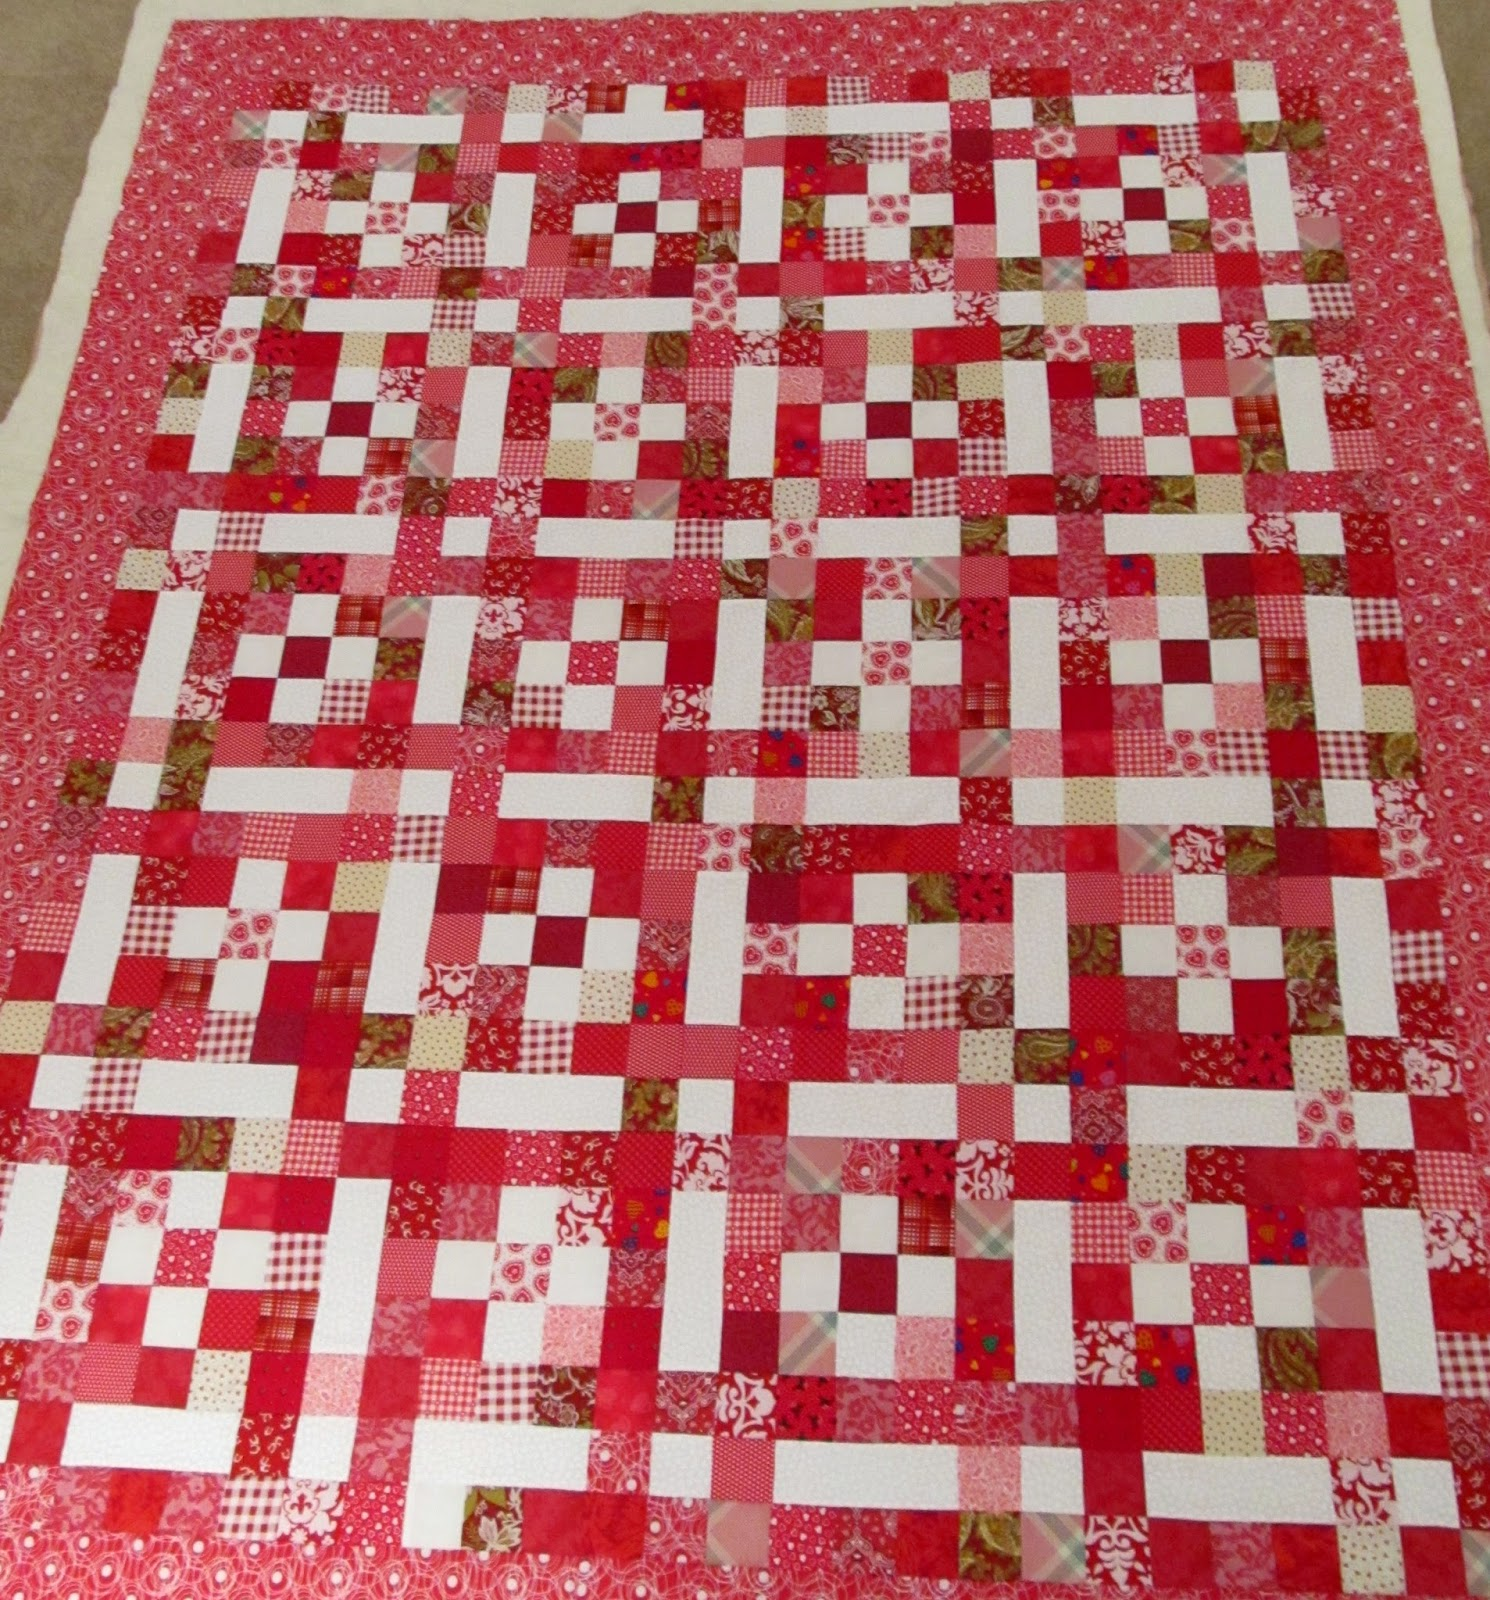 Making a red quilt